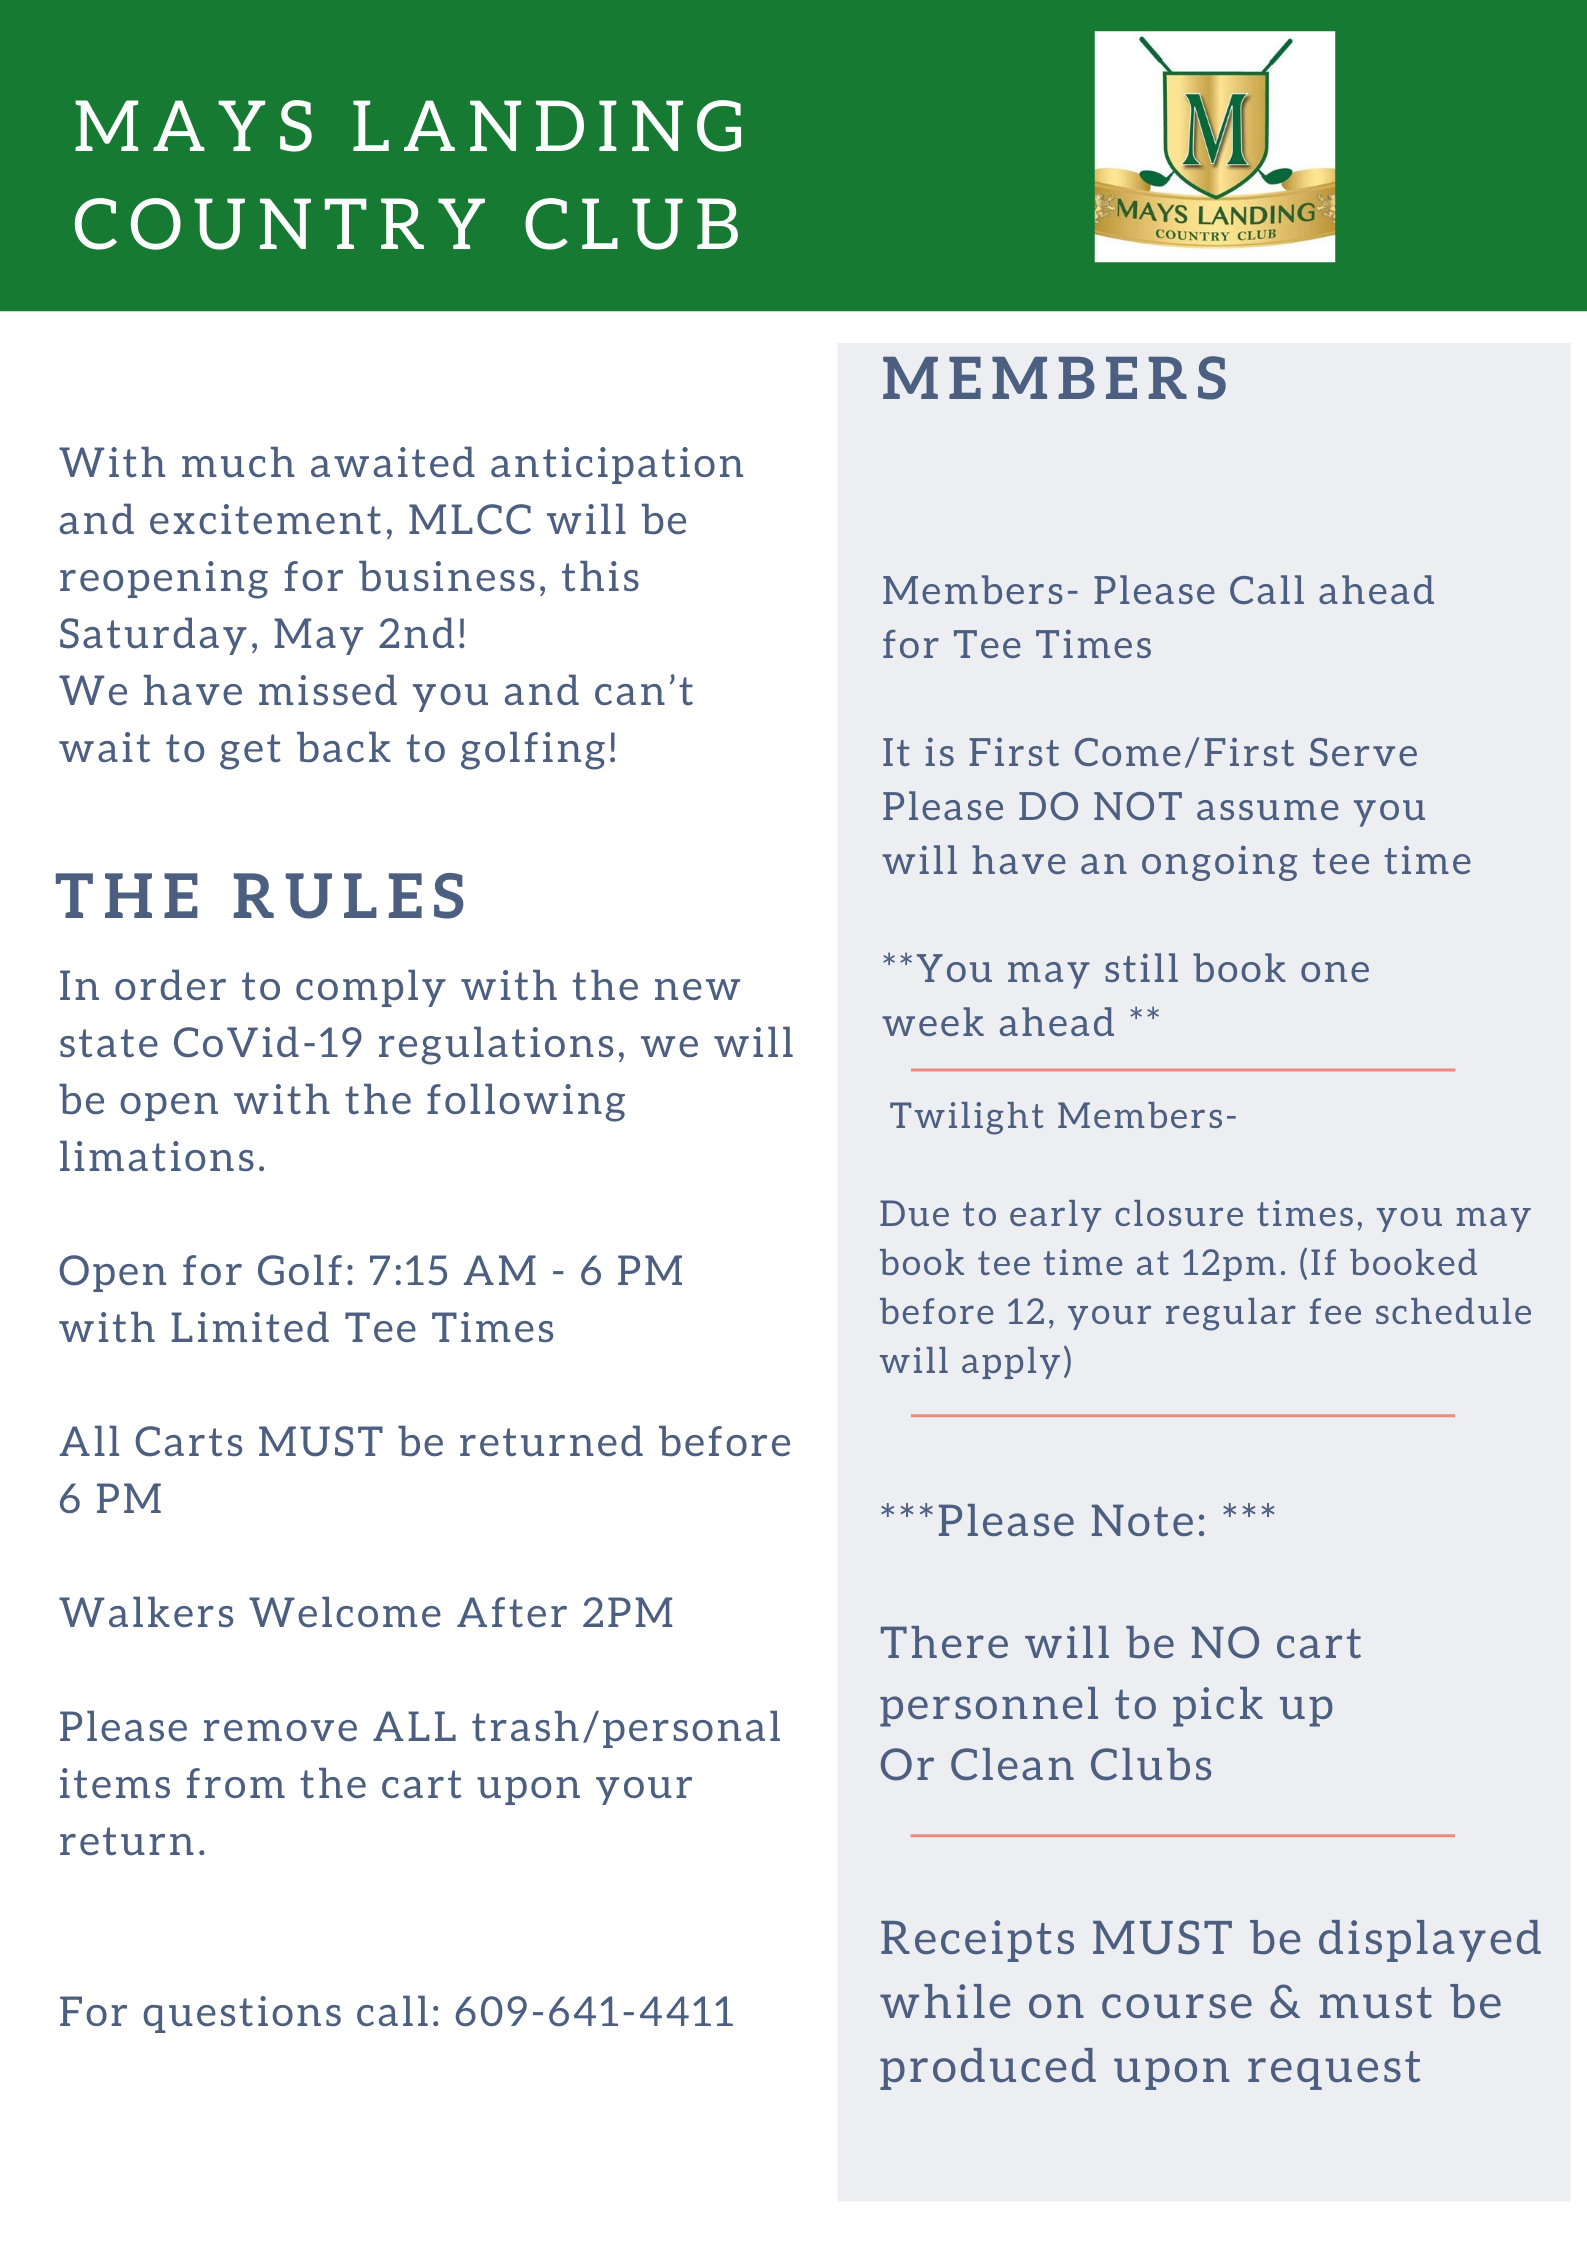 With much awaited anticipation and excitement, MLCC will be reopening for business, this Saturday may 2nd! We have missed you and can't wait to get back to golfing! The rules: in order to comply with the new state COVID-19 regulations, we will be open with the following limitations. Open for golf 7:15 AM- 6:00 PM with limited tee times. All carts must be returned before 6:00 PM. Walkers welcome after 2:00 PM. Please remove all trash/ personal items from the cart upon your return. For questions call 609-641-4411. Members, please call ahead for tee times. It is first come/ first serve, please do not assume you will have an ongoing tee time. You may still book one week ahead. Twilight members- due to early closure times, you may book tee time at 12:00 PM. If booked before 12, your regular fee schedule will apply. Please note, there will be no cart personnel to pick up or clean clubs. Receipts msut be dsiplayed while on course and must be produced upon request.